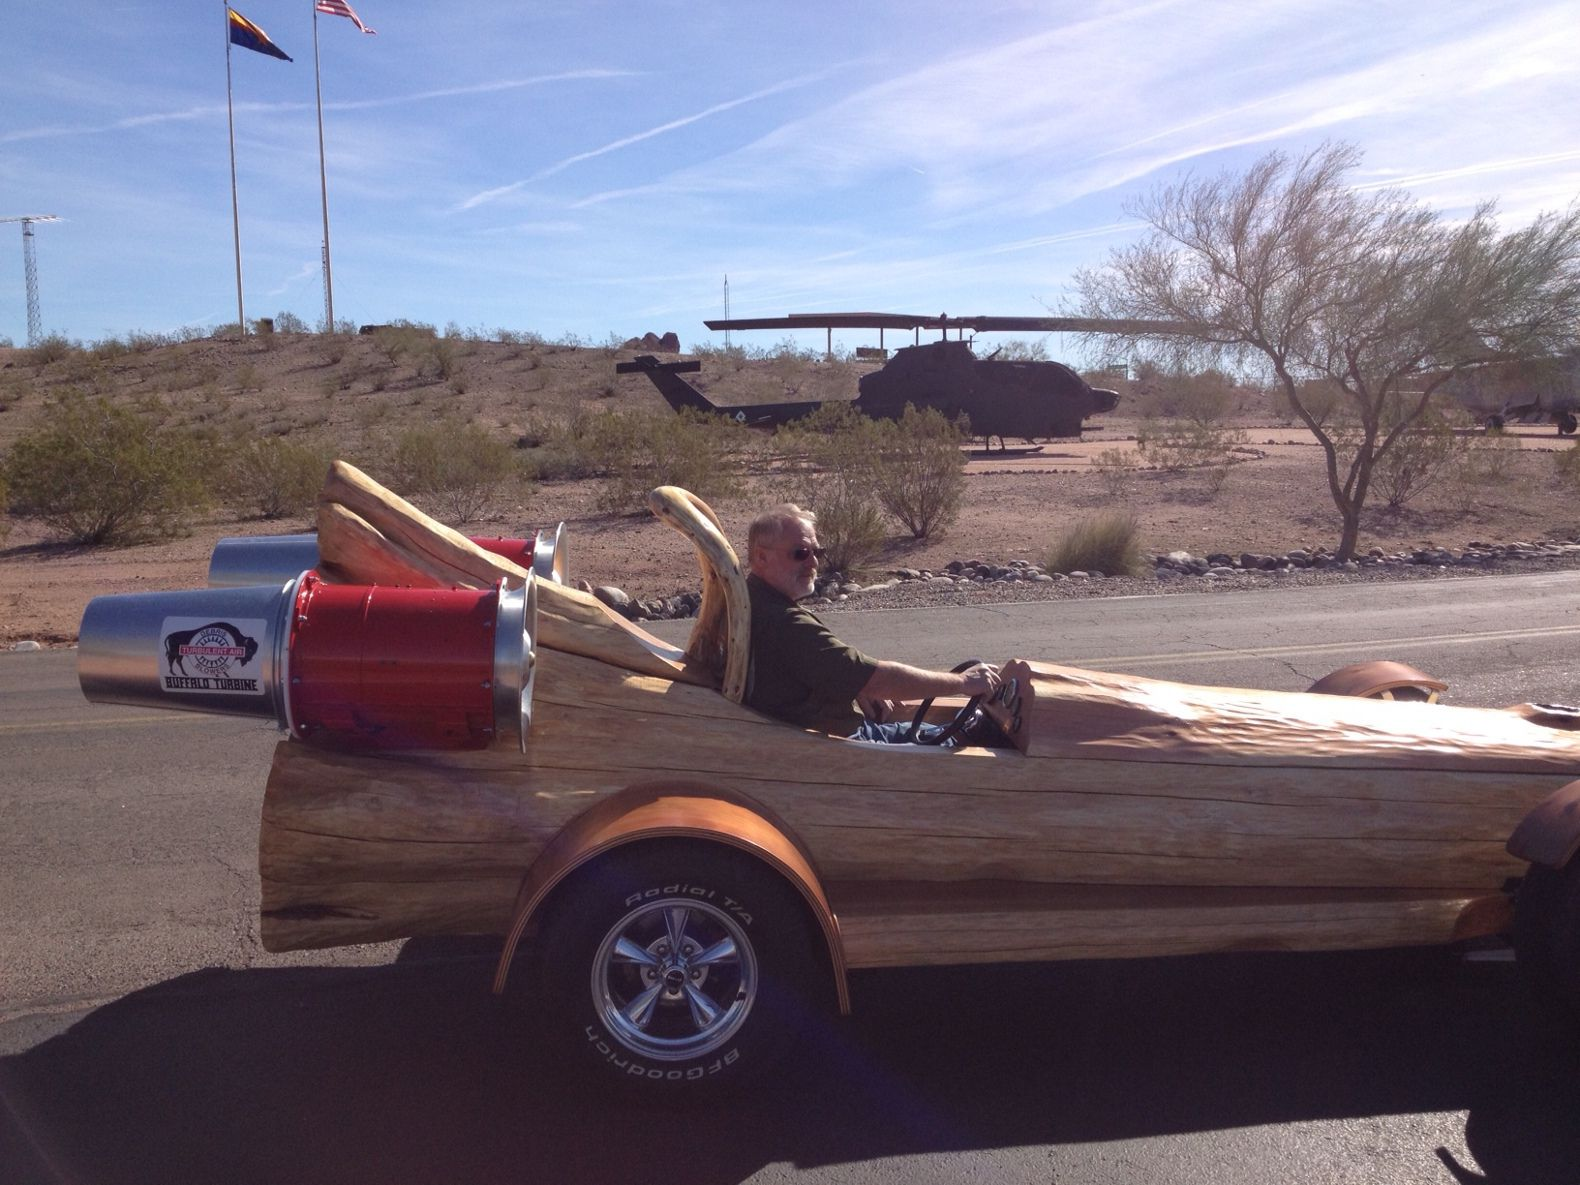 The Cedar Rocket Is The Fastest All-Electric Log Car In The World (1)